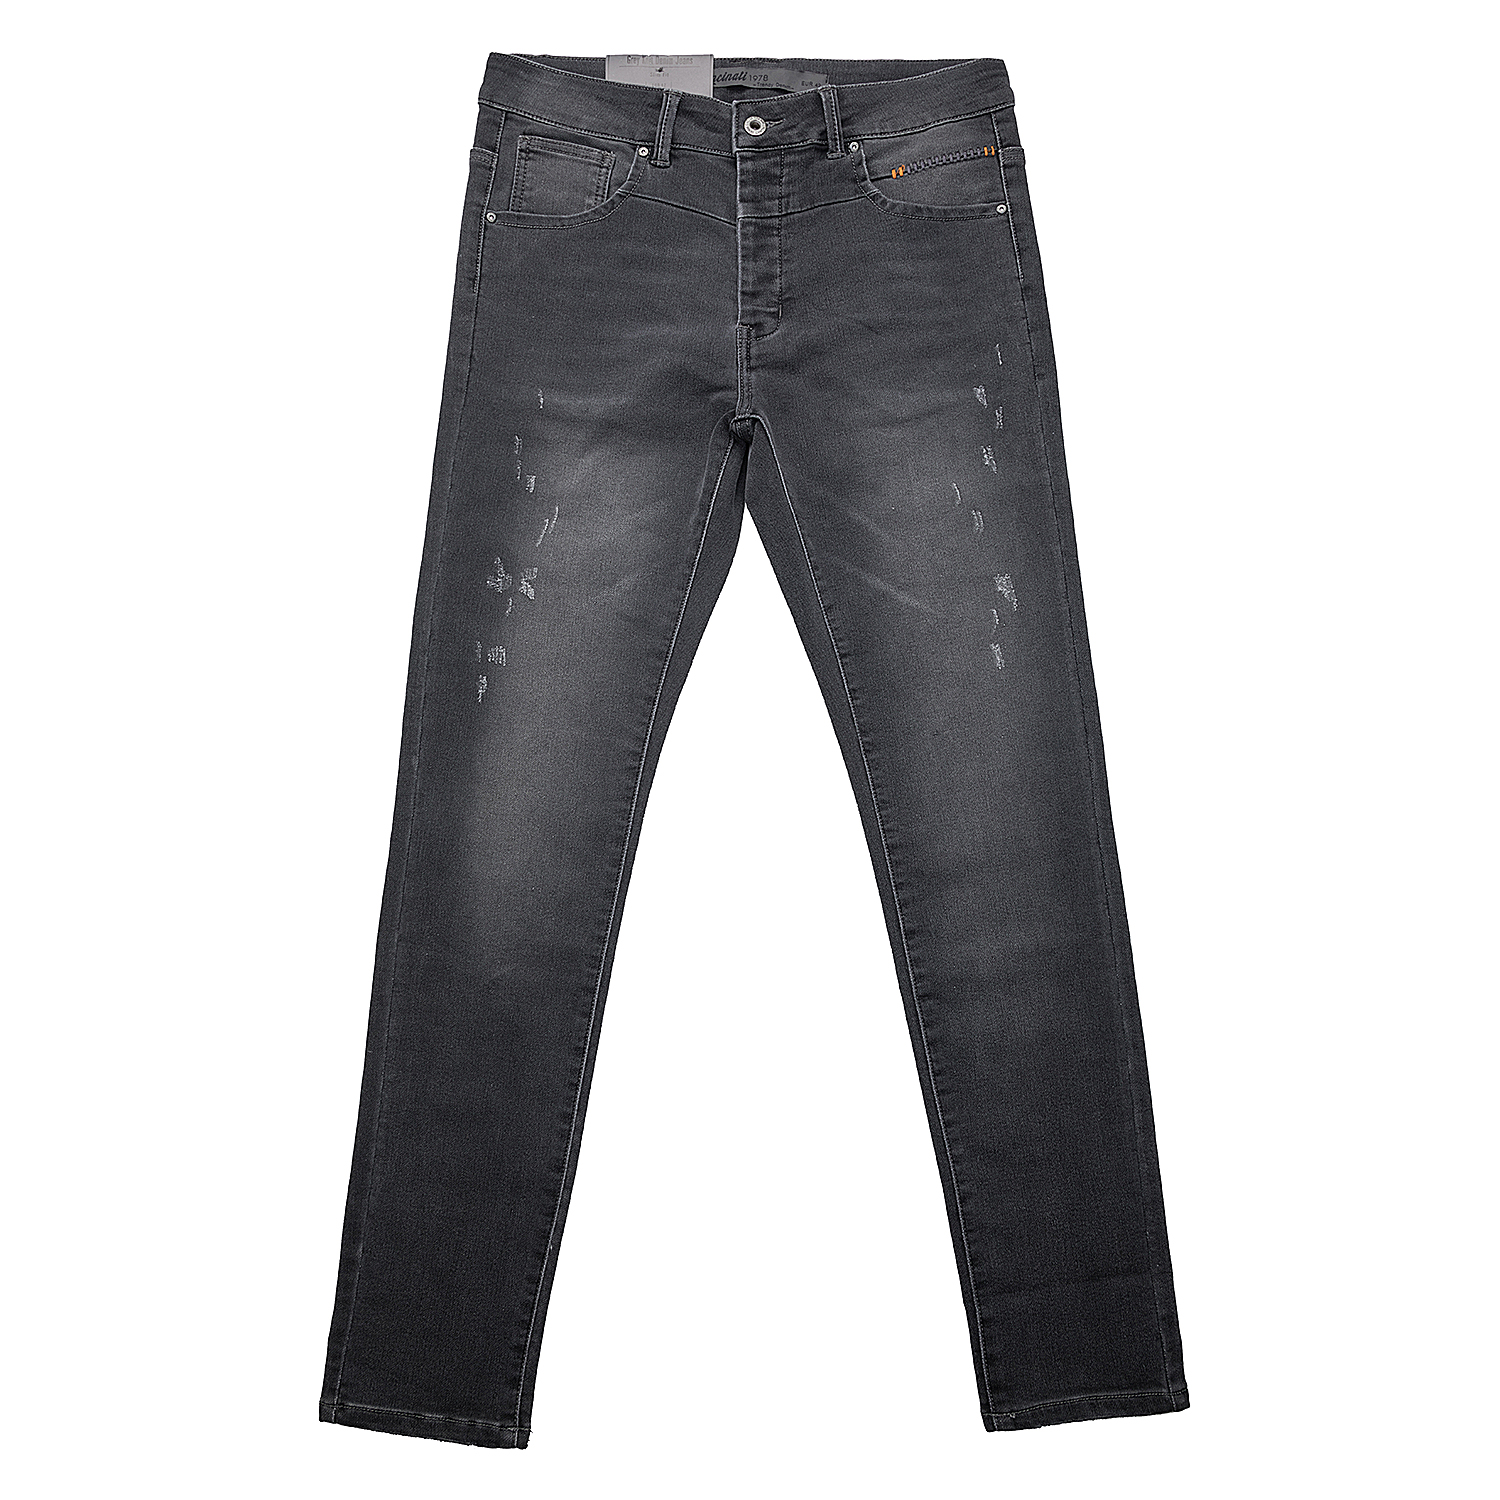 <b>Grey Knit Denim Slim Fit Jeans</b>